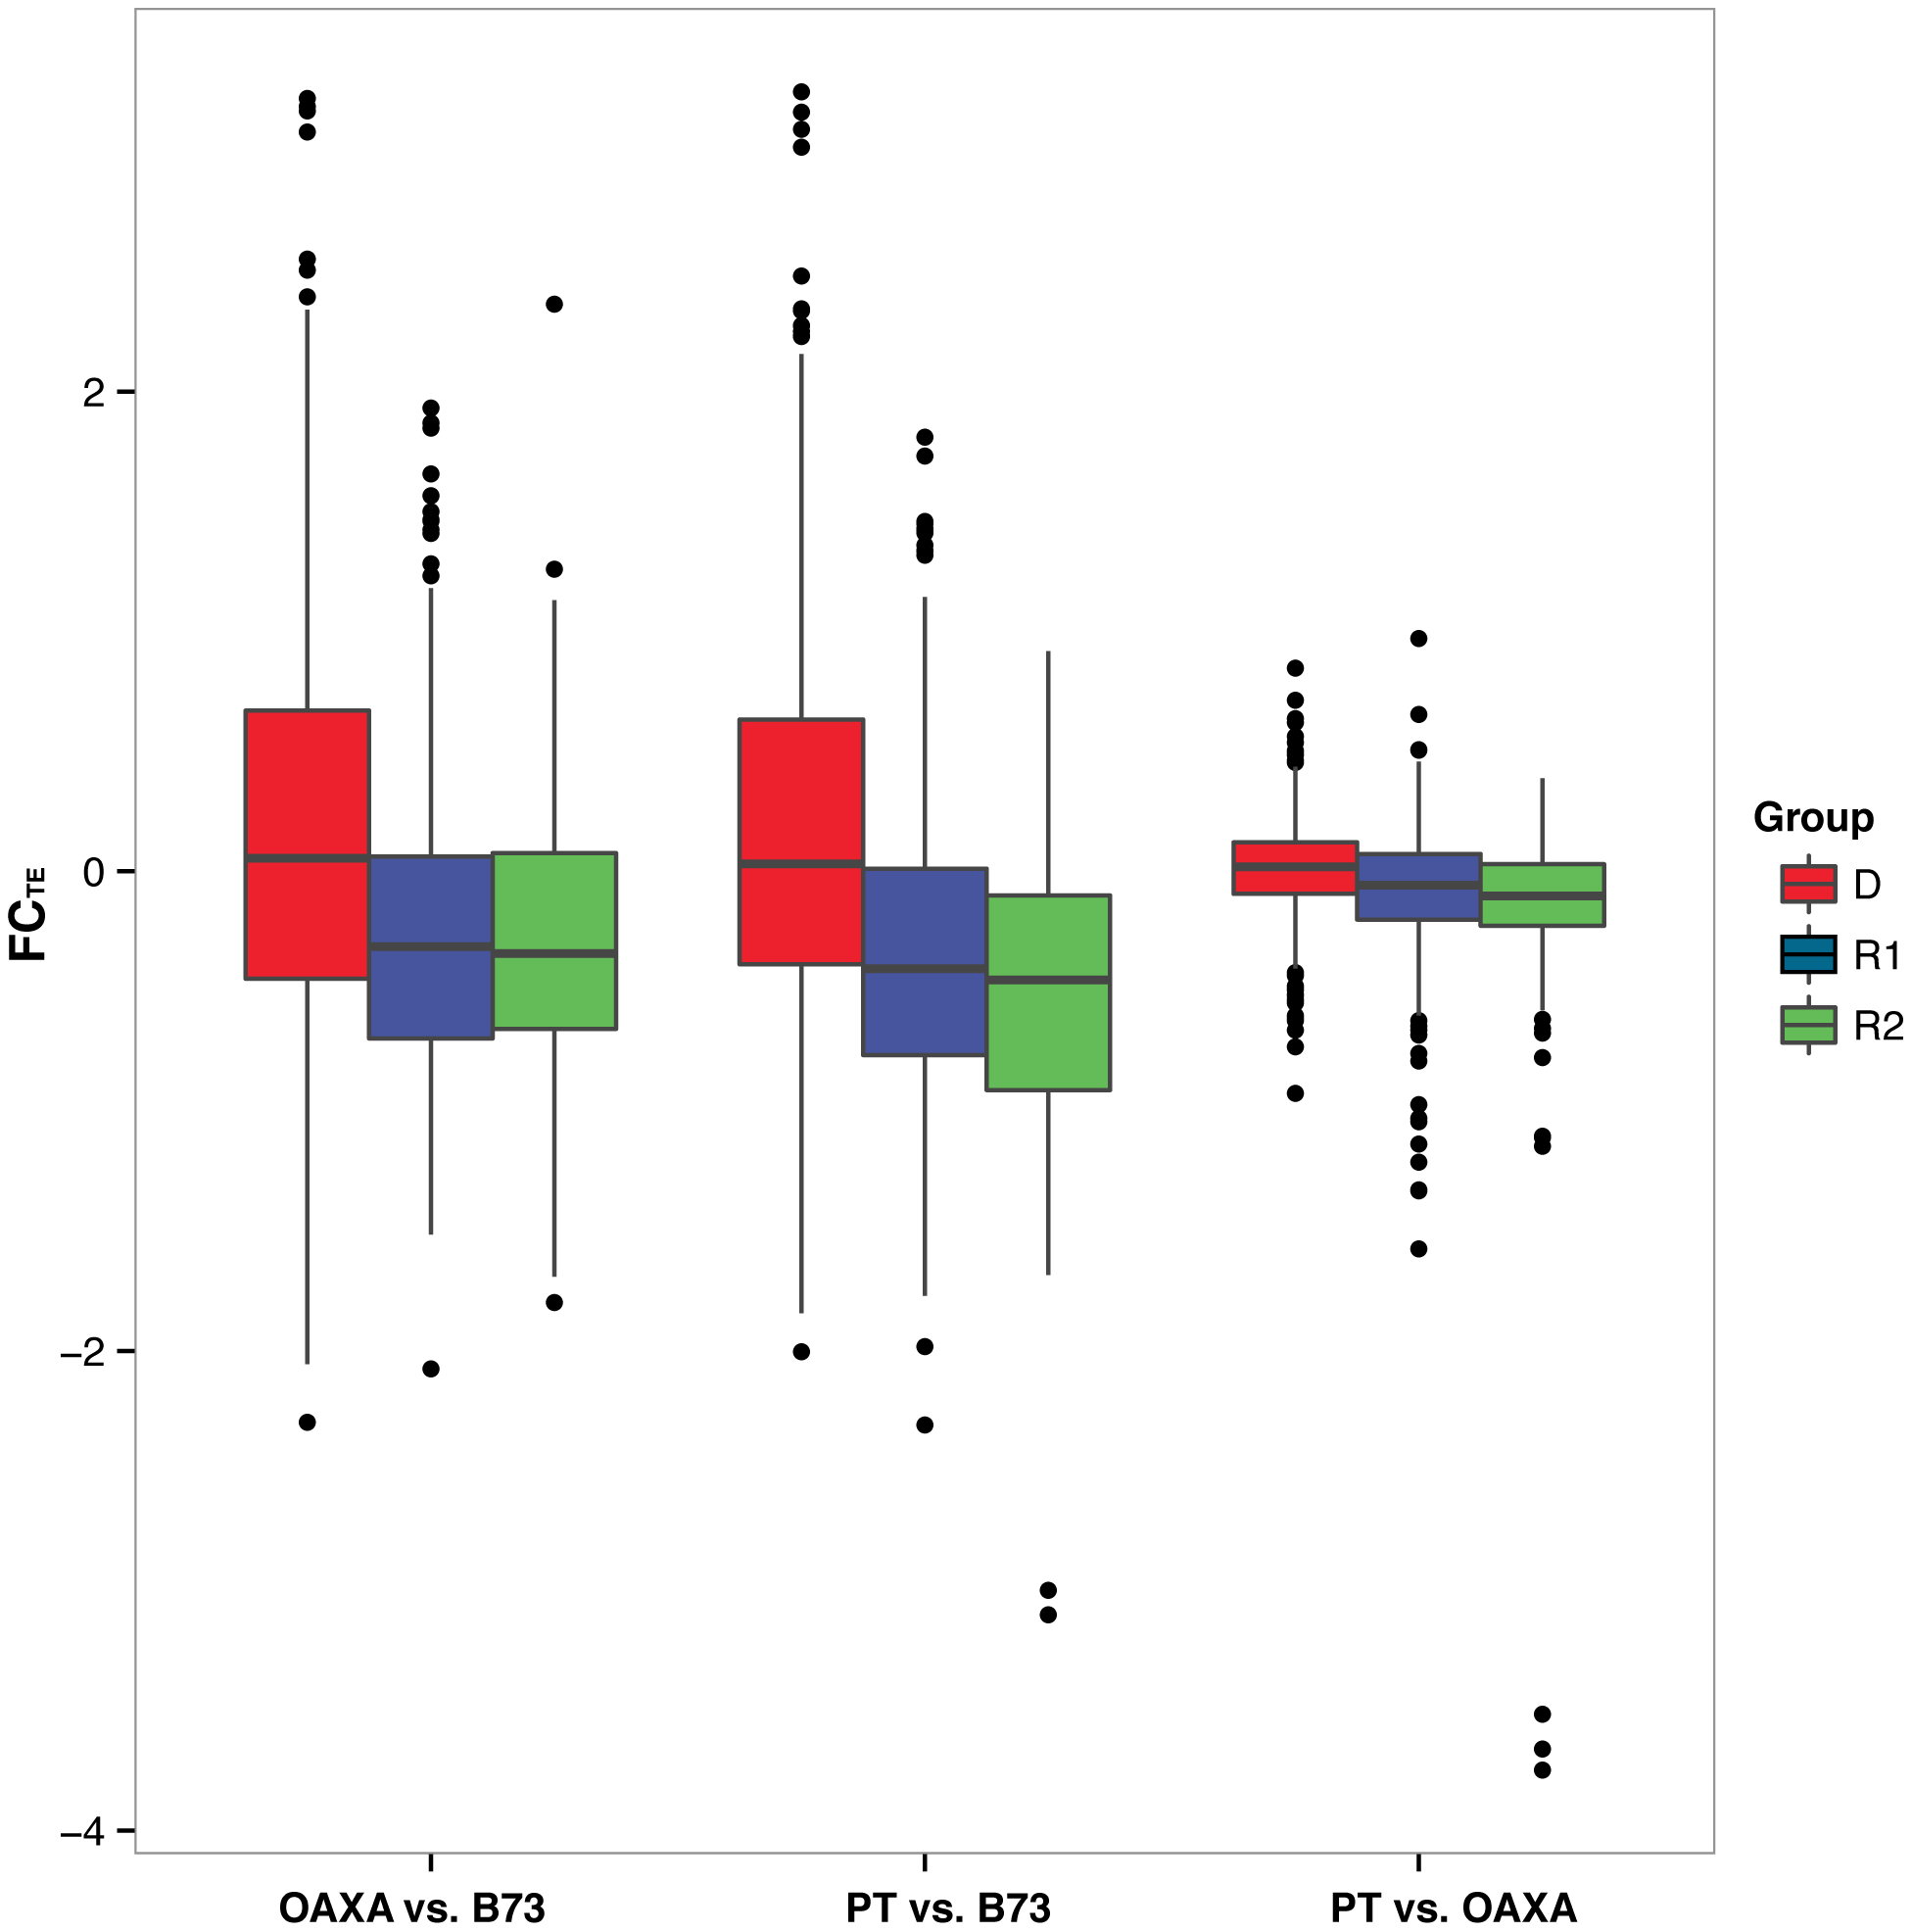 Boxplots of Fold Change in genomic reads for TEs (FC<sub>TE</sub>) within the D, R1 and R2 groups.